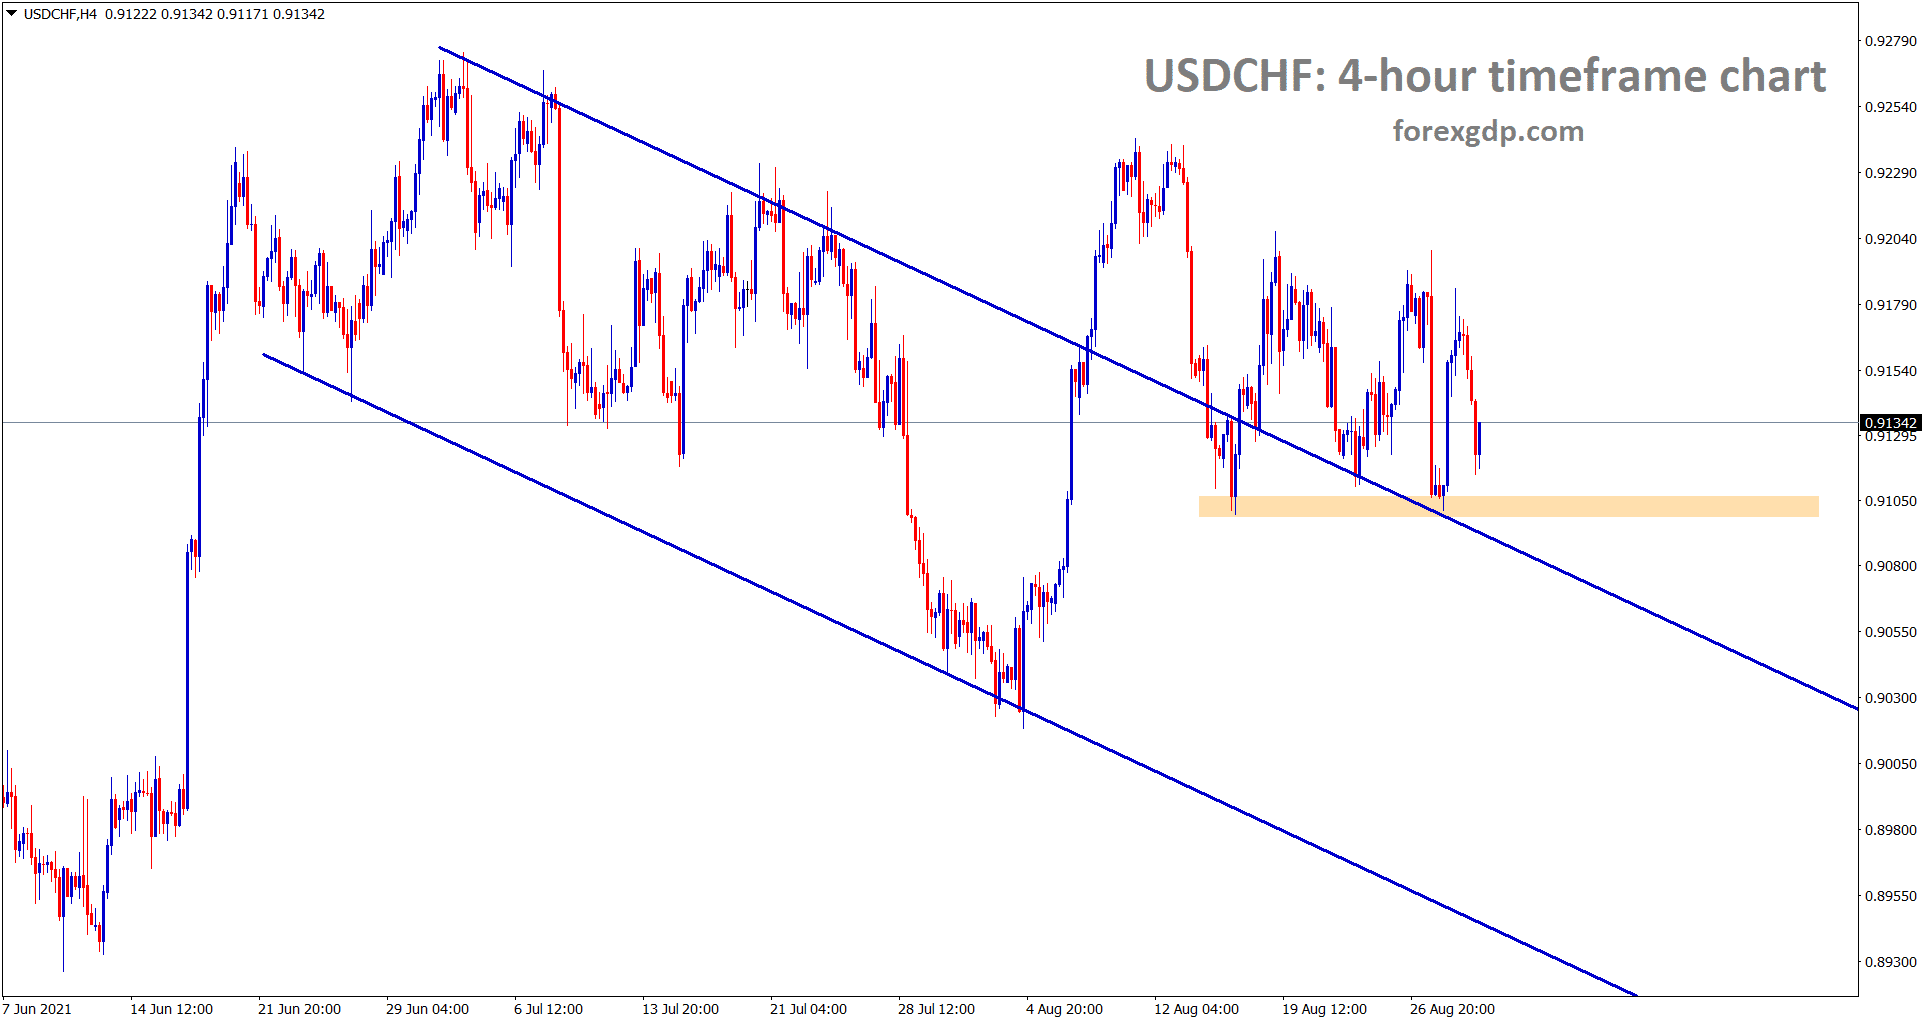 USDCHF bouncing back after retesting the broken descending channel and the horizontal support area